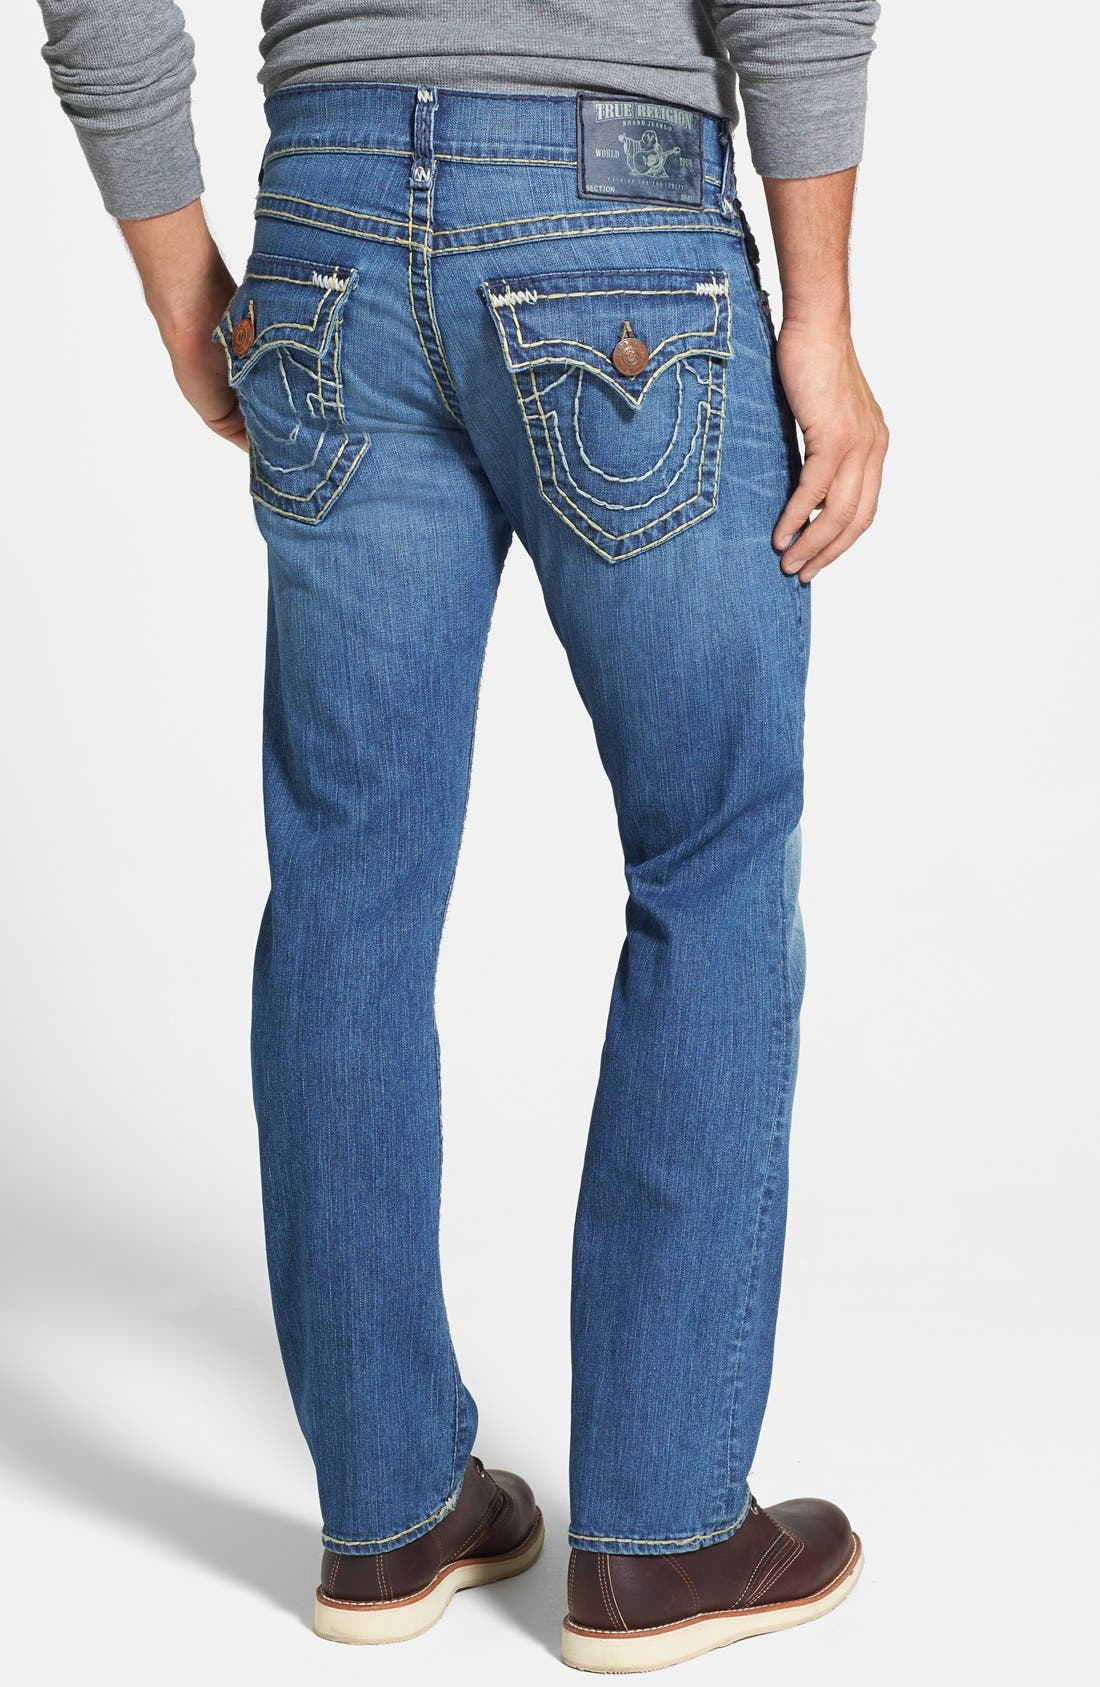 Main Image - True Religion Brand Jeans 'Ricky' Relaxed Fit Jeans (Azwl Malibu Cruise)